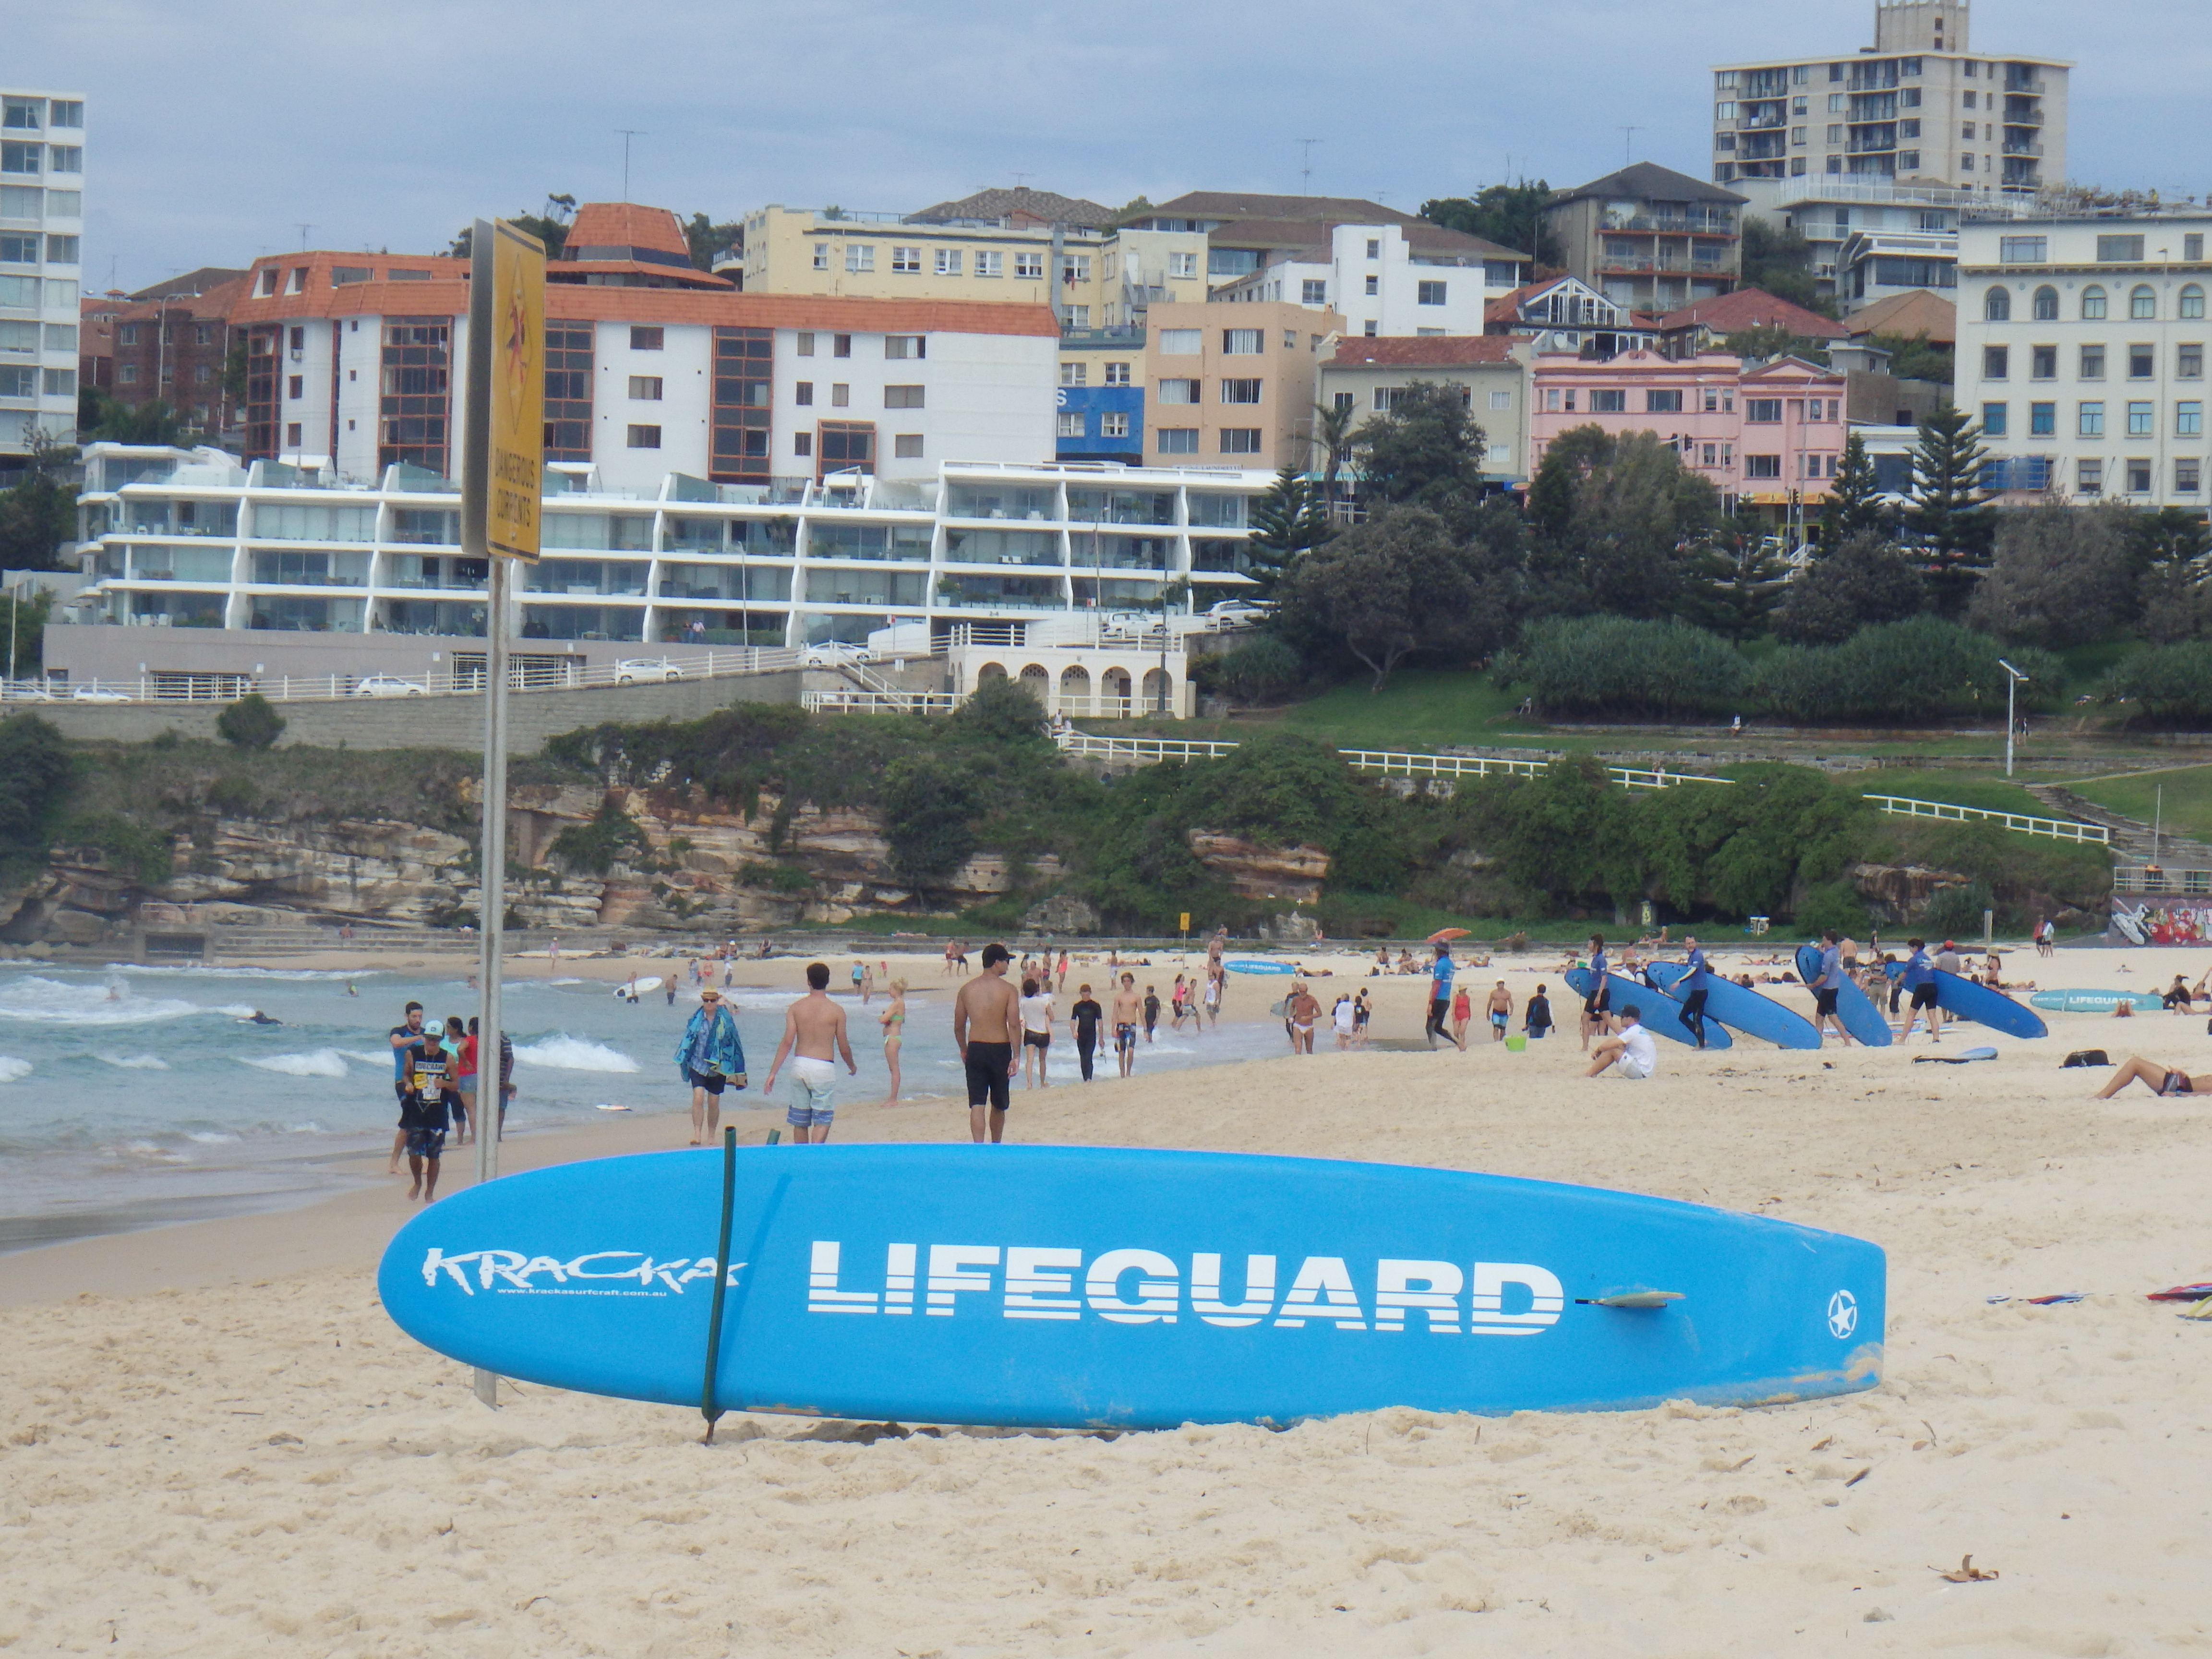 Bondi Beach en lifeguard surfboard